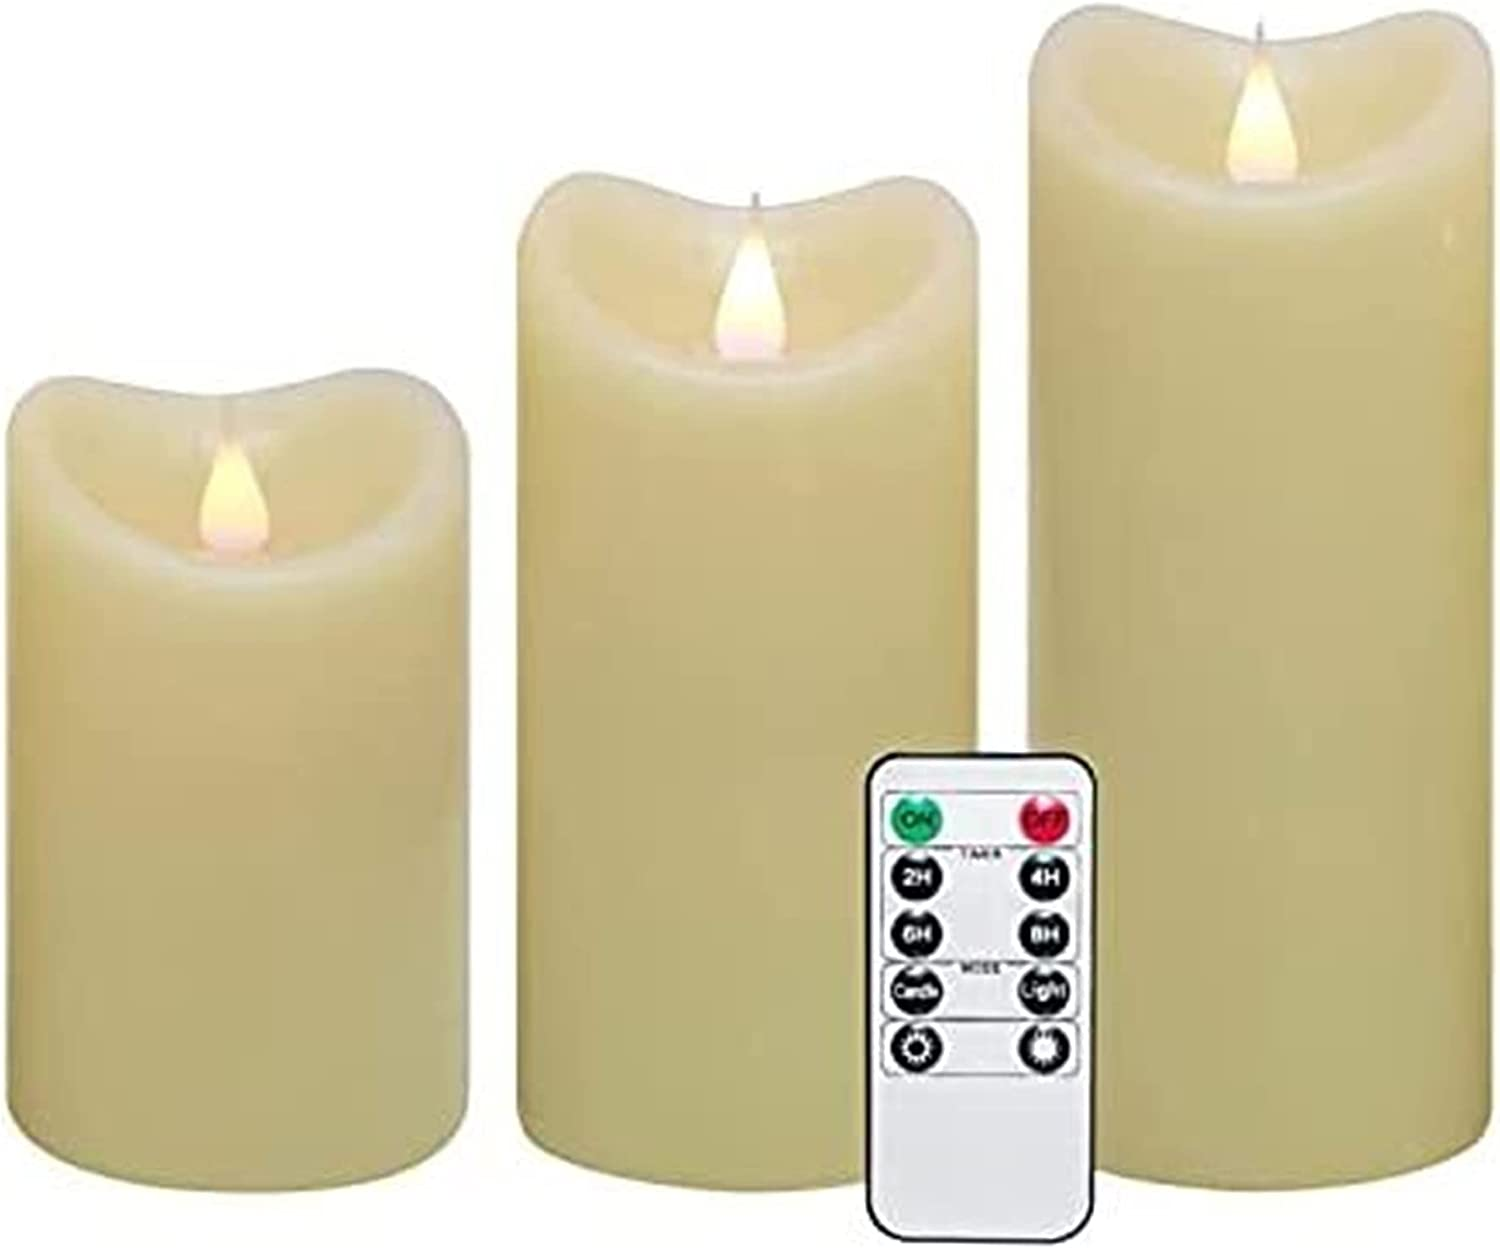 Jsmhh Moving Wick Flameless Same day shipping 10 Direct store Key Timer 5 by Remote 6 3-Inch